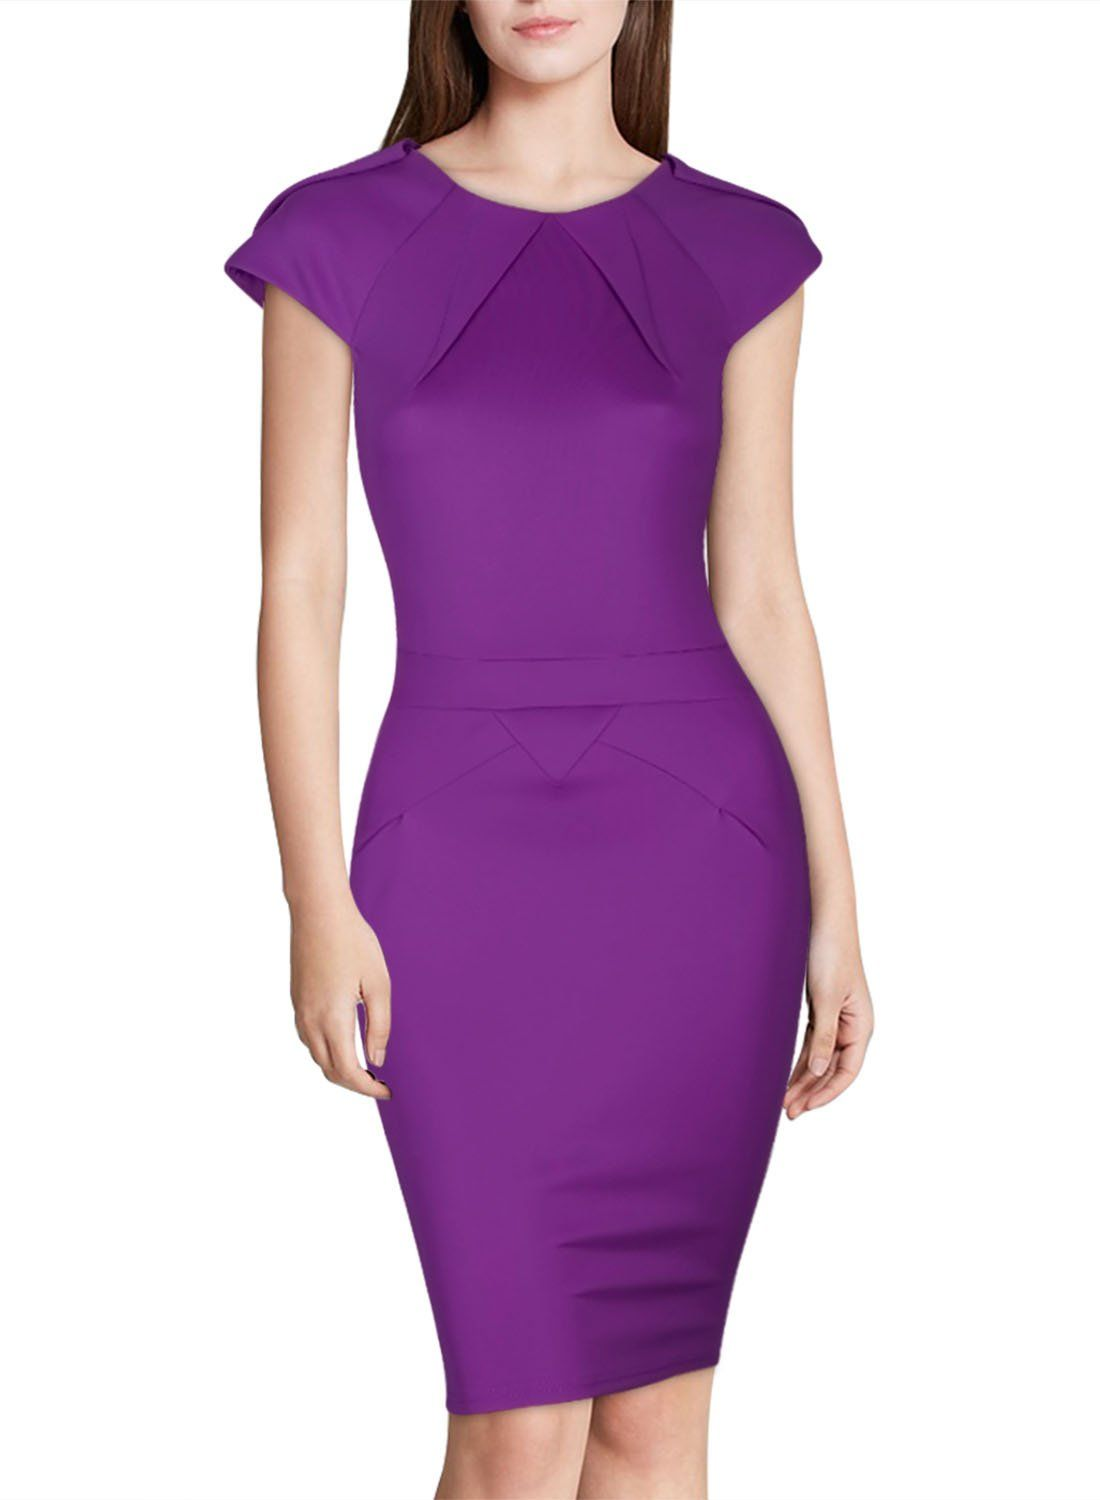 Miusol Women\'s Scoop Neck Fitted Offical Midi Bodycon Dress, Light ...